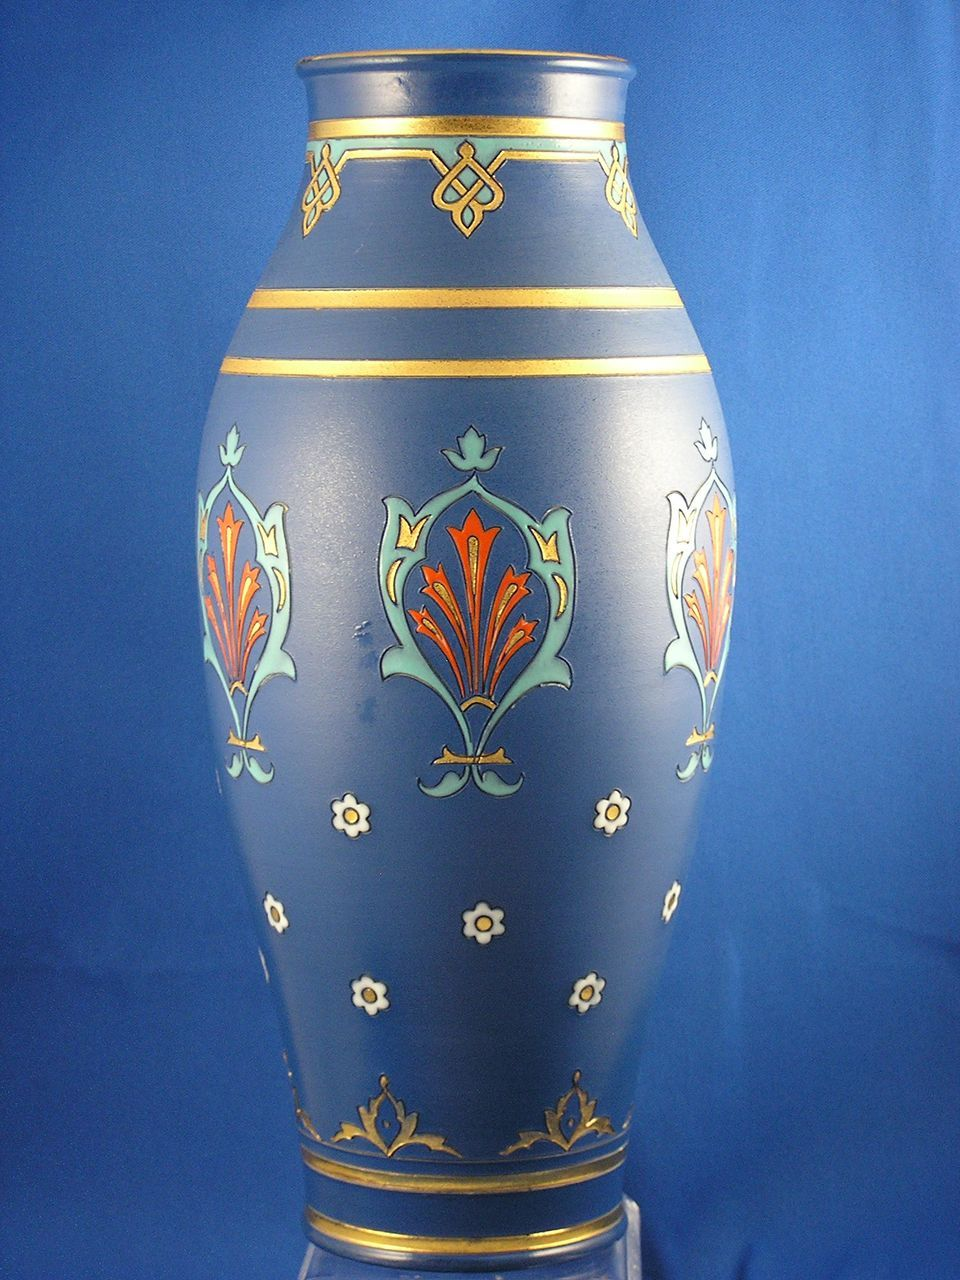 large villeroy boch mettlach germany arts crafts vase from darkflowers on ruby lane. Black Bedroom Furniture Sets. Home Design Ideas